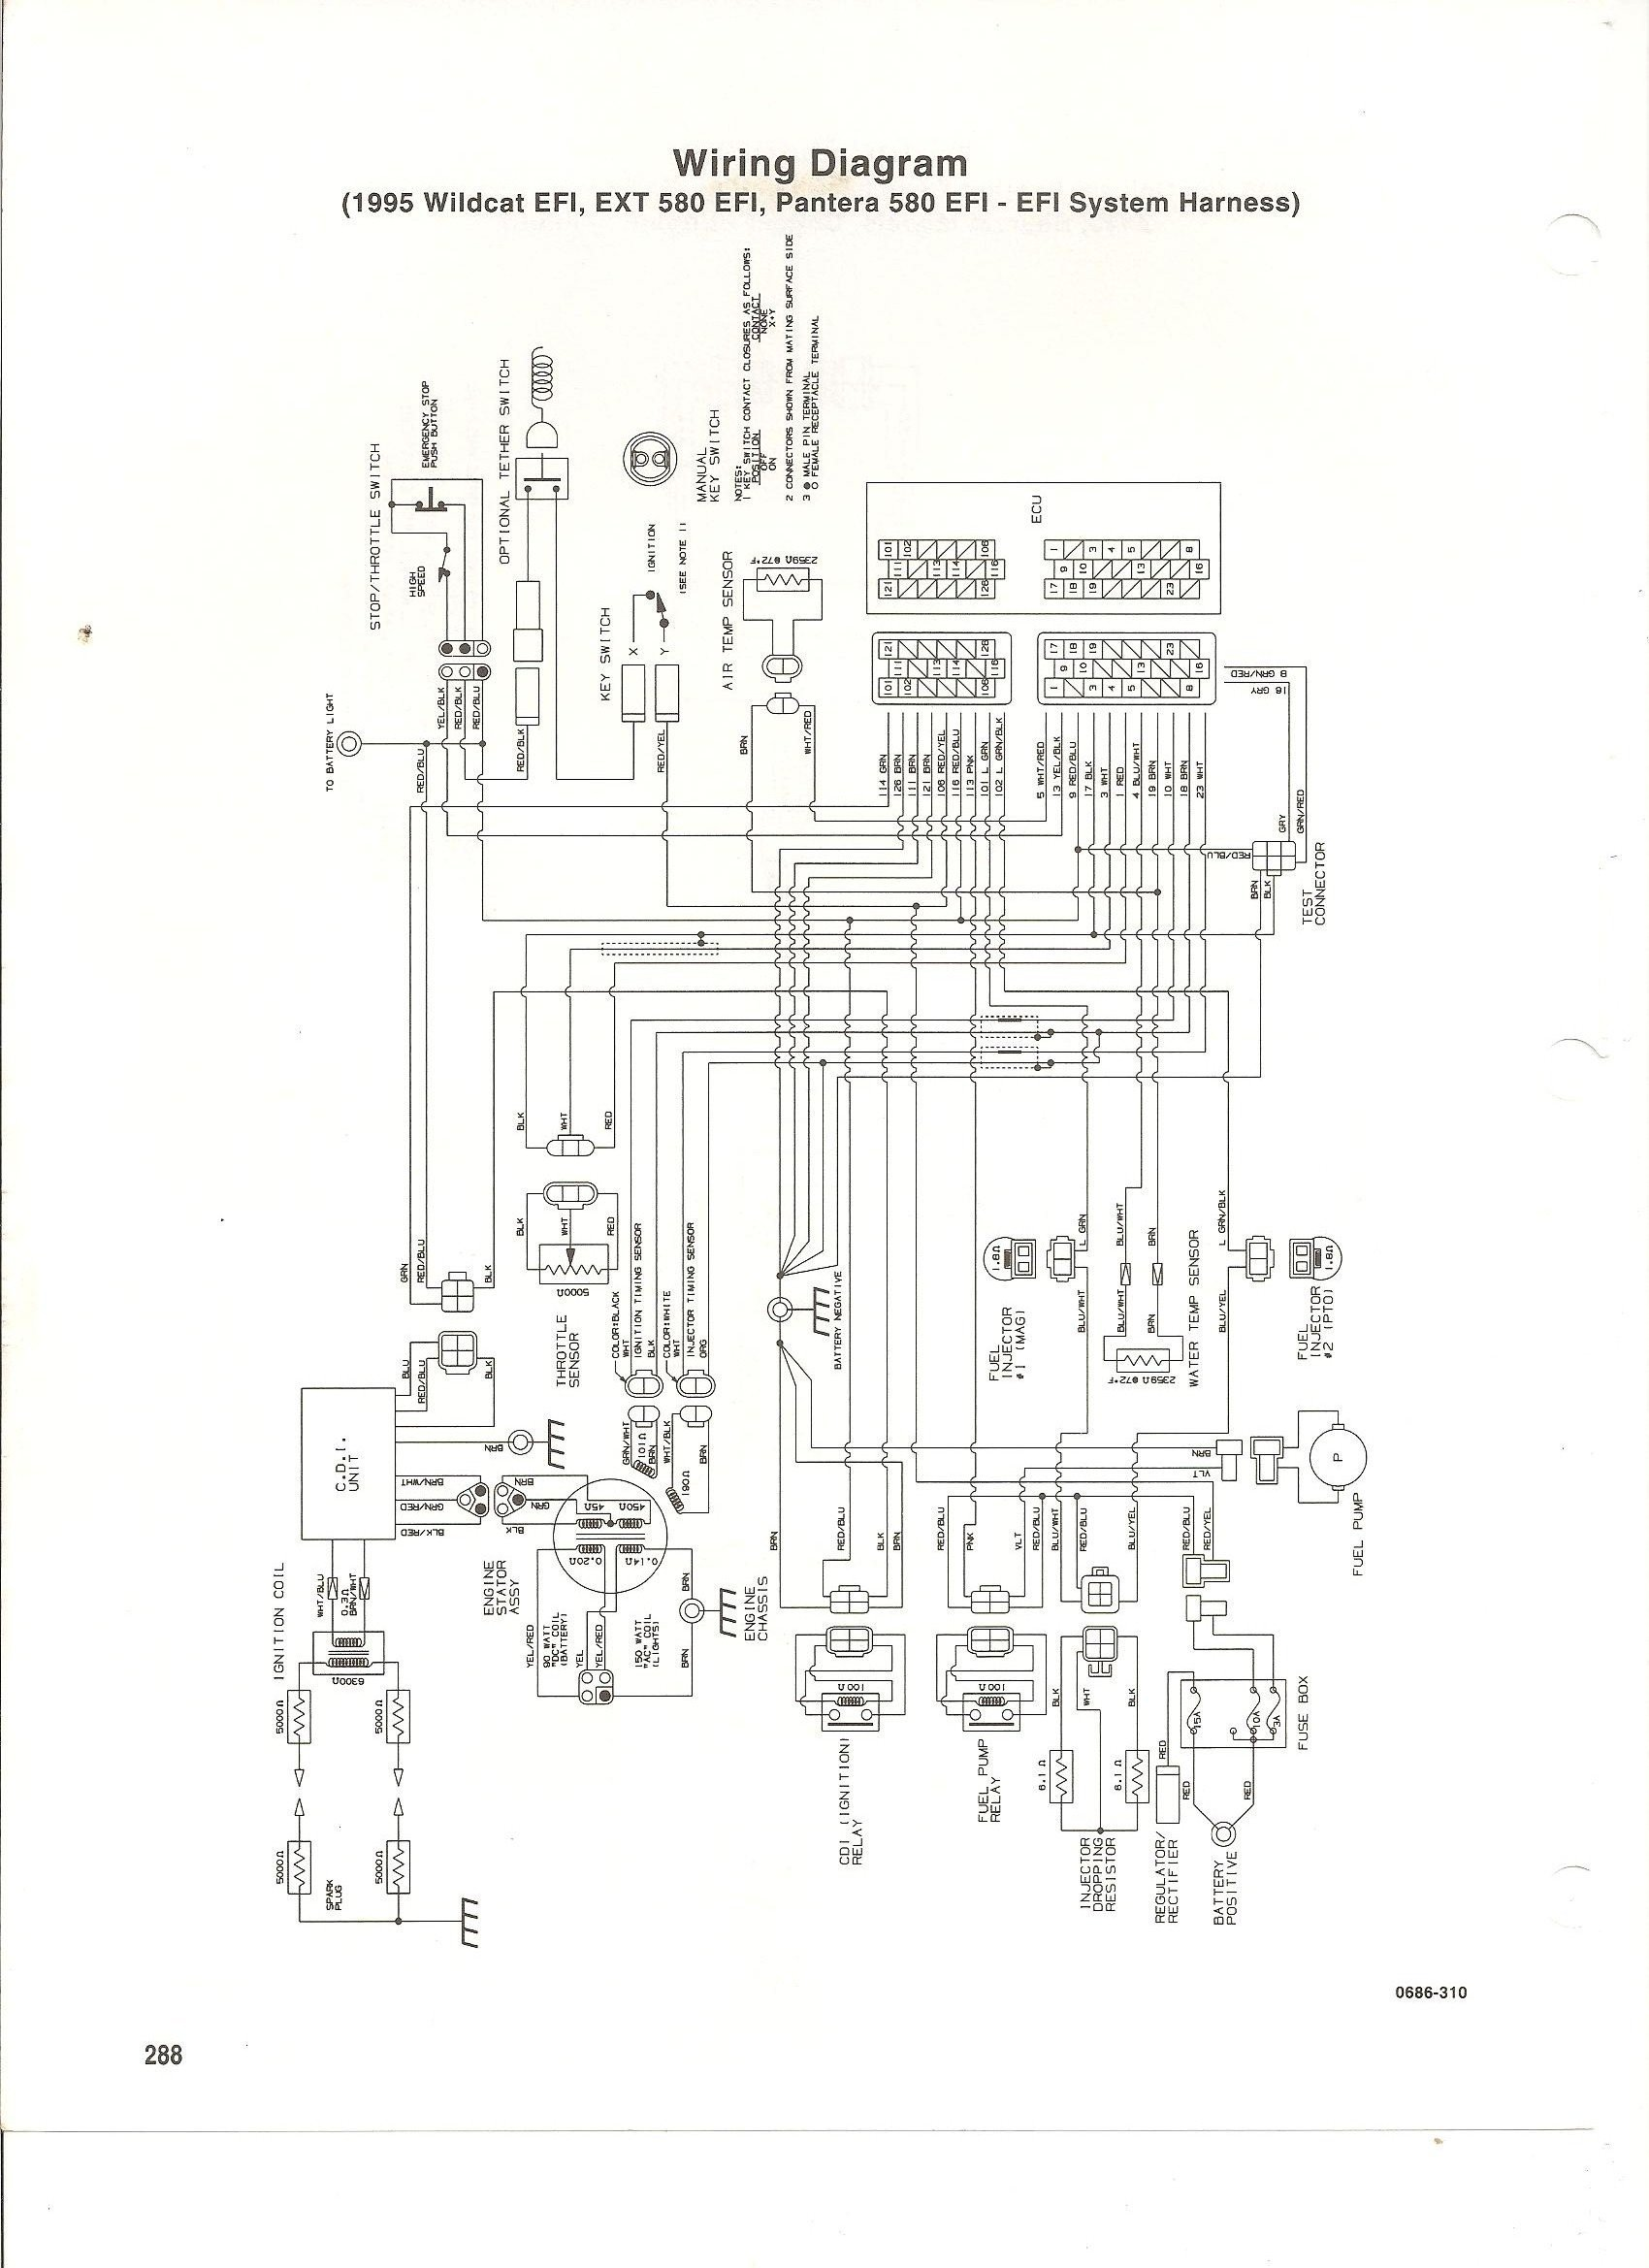 small resolution of wildcat wiring diagram wiring diagram92 700 wildcat wiring diagram online wiring diagram wildcat trail wiring diagram